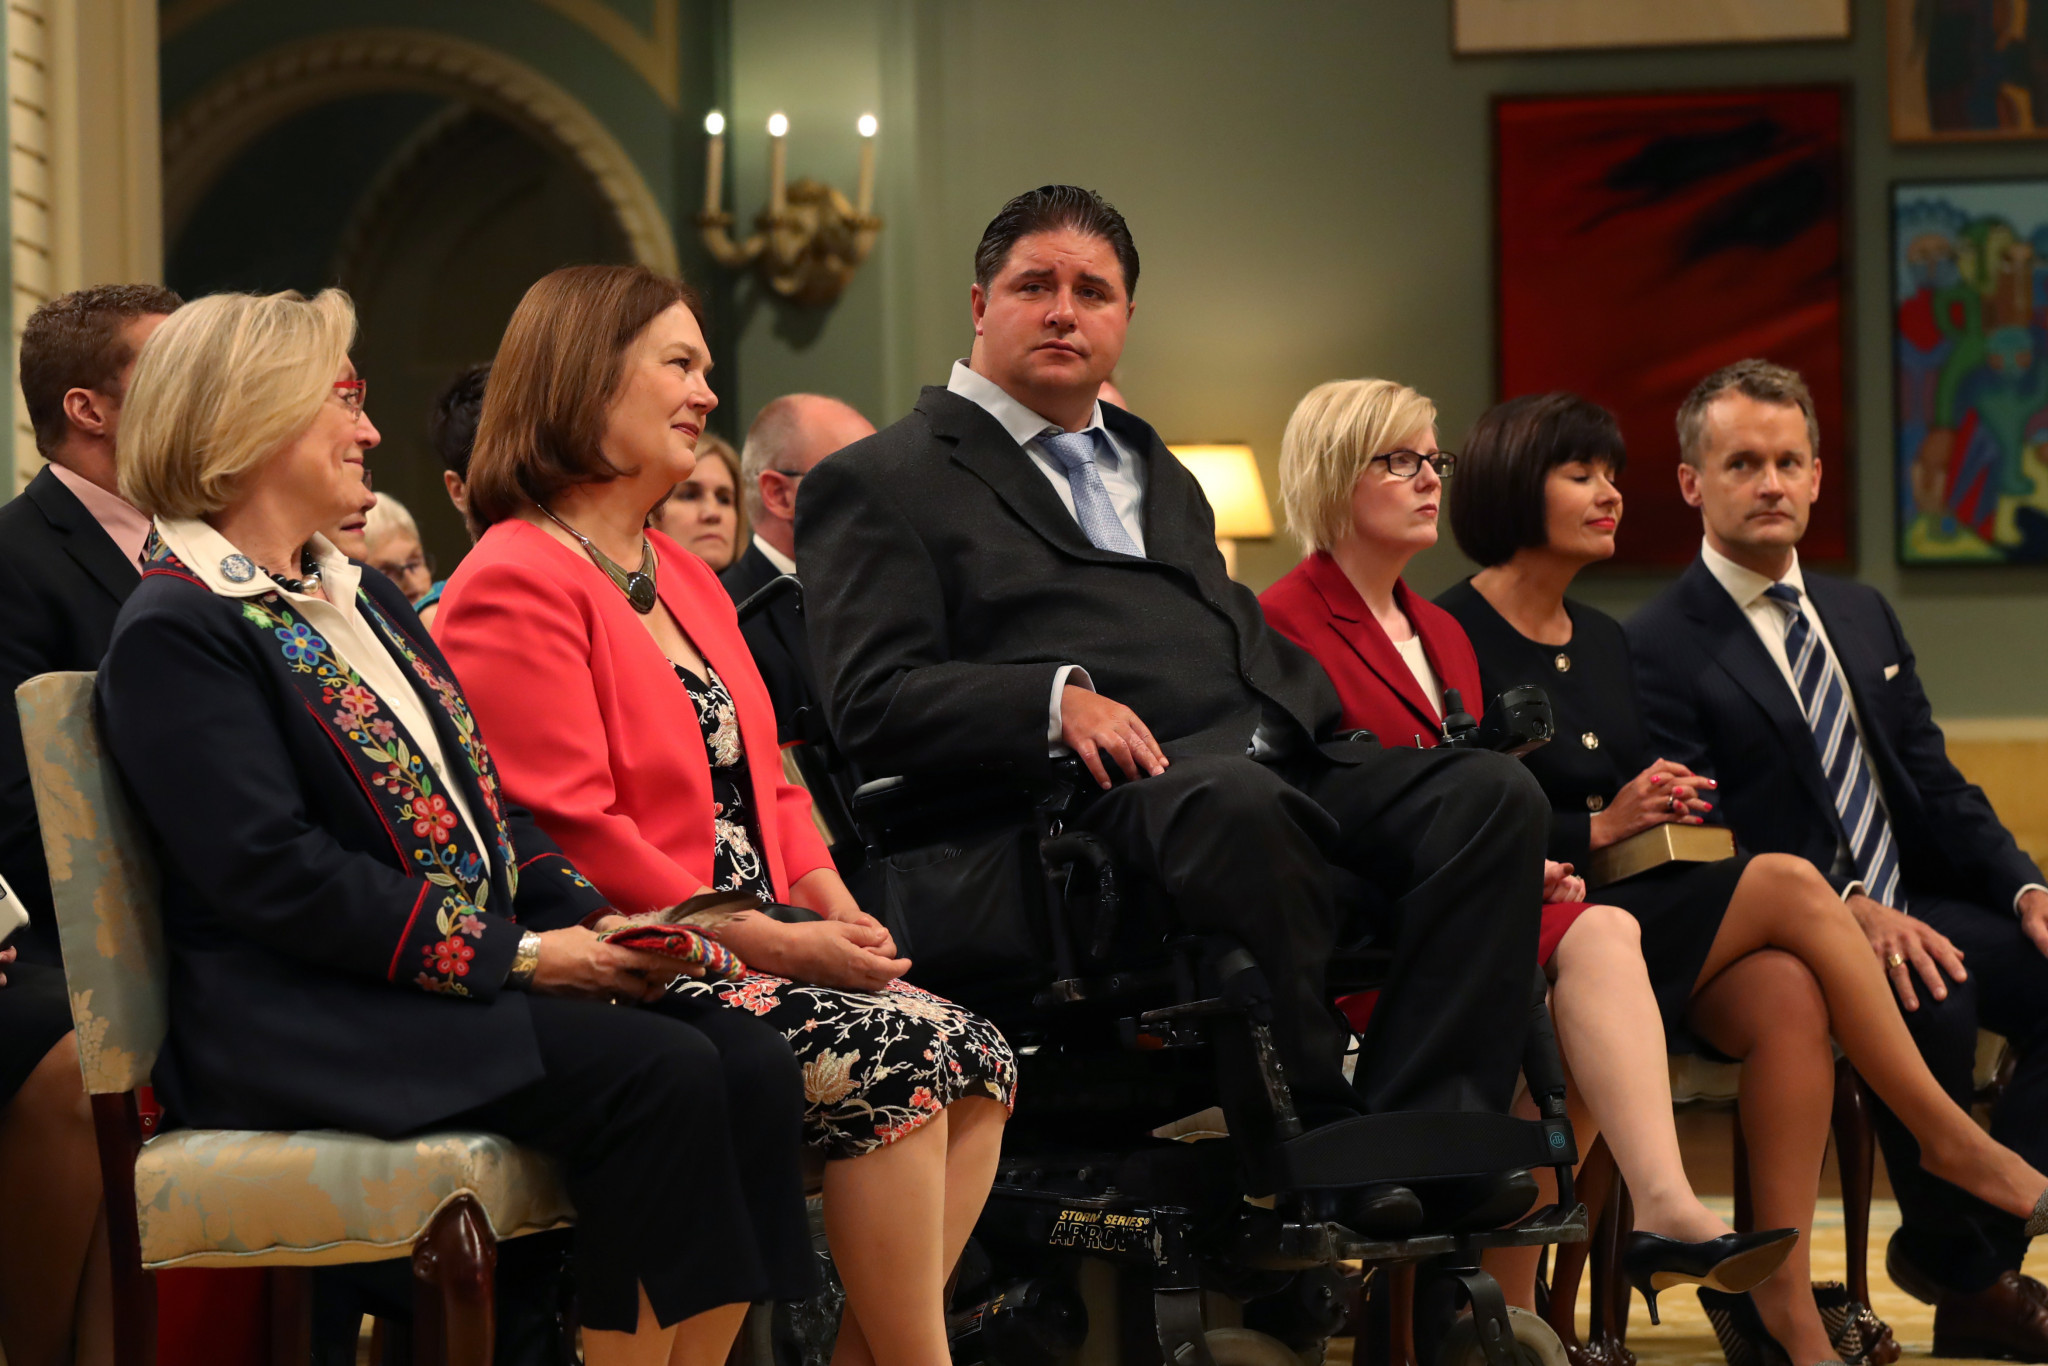 Kent Hehr, centre, is pictured with colleagues at a swearing-in ceremony for Canadian Government Ministers in Ottawa ©Getty Images